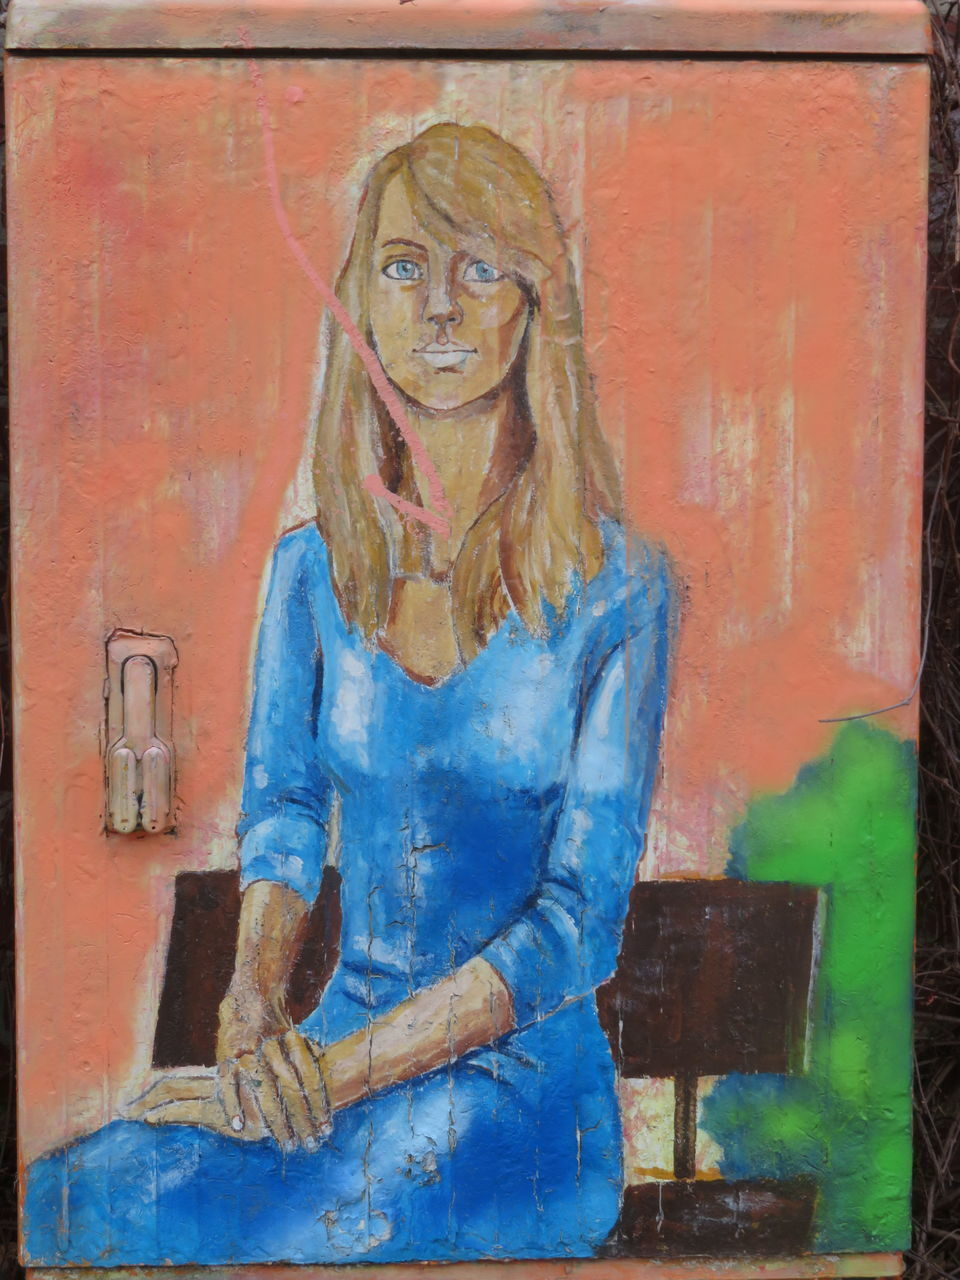 art and craft, creativity, human representation, one person, representation, paint, real people, front view, blue, long hair, standing, women, female likeness, portrait, adult, day, indoors, three quarter length, looking at camera, hairstyle, mural